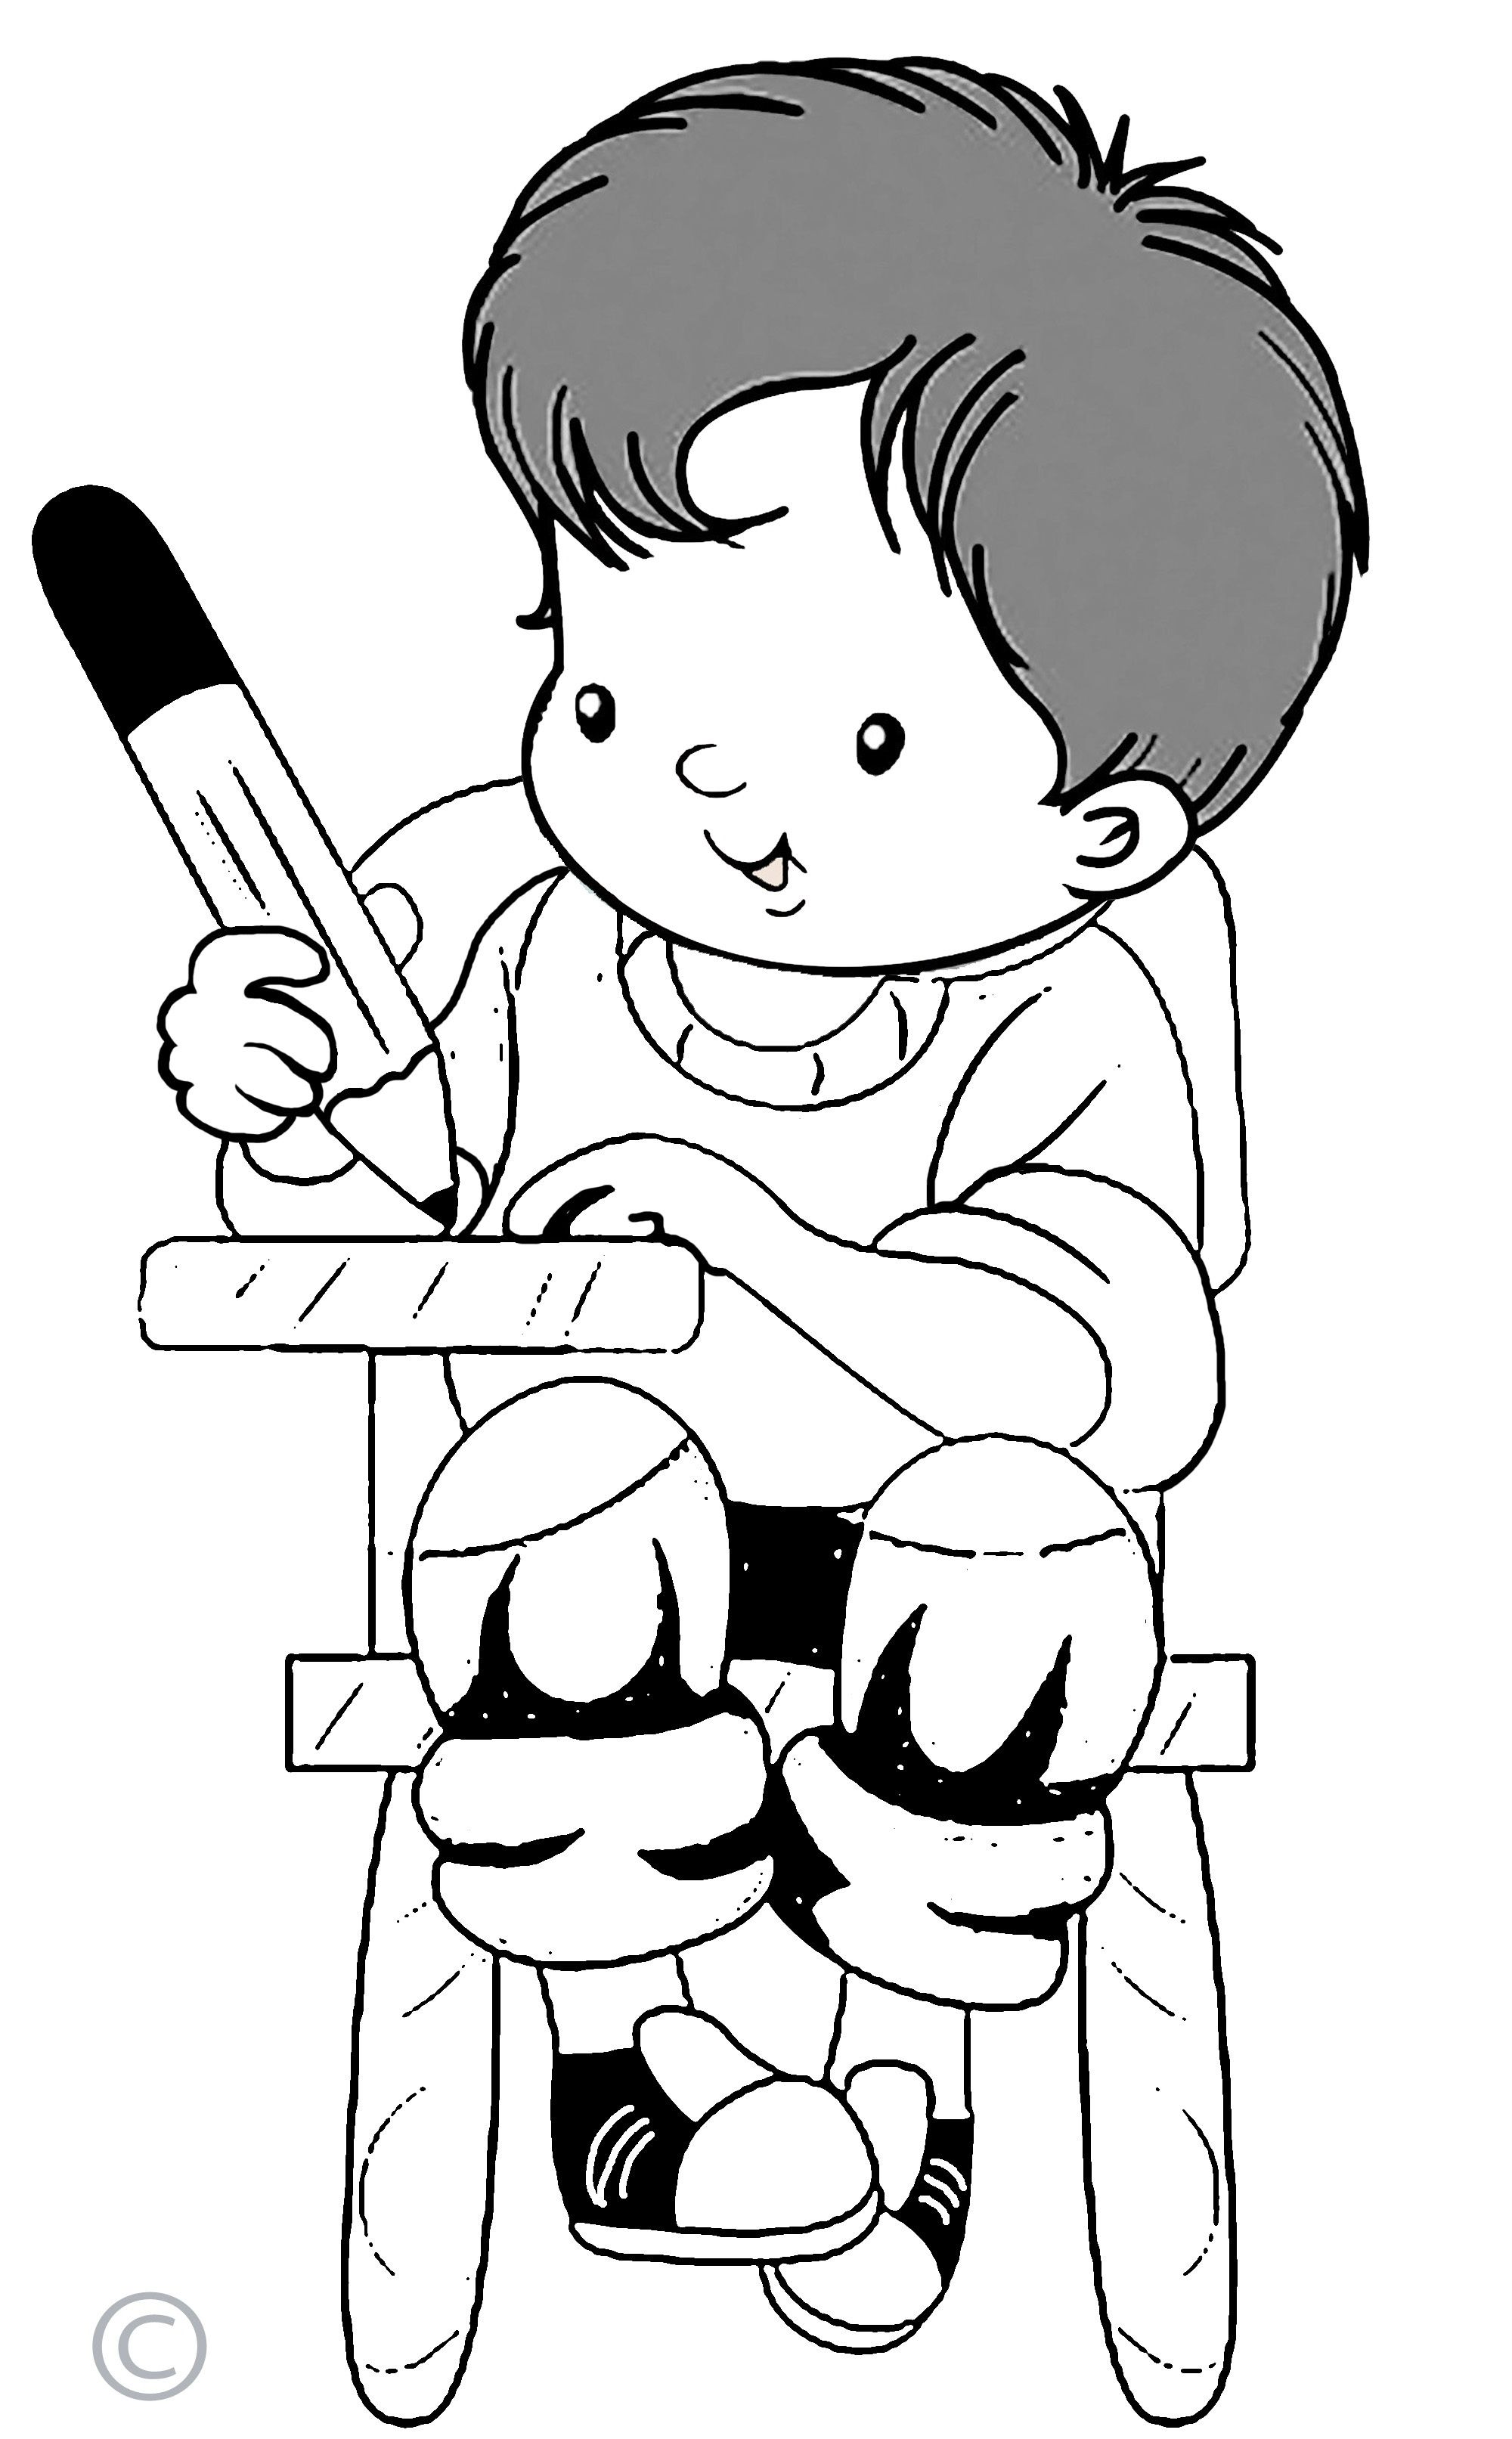 28+ Collection Of Kids Writing Clipart Black And White.